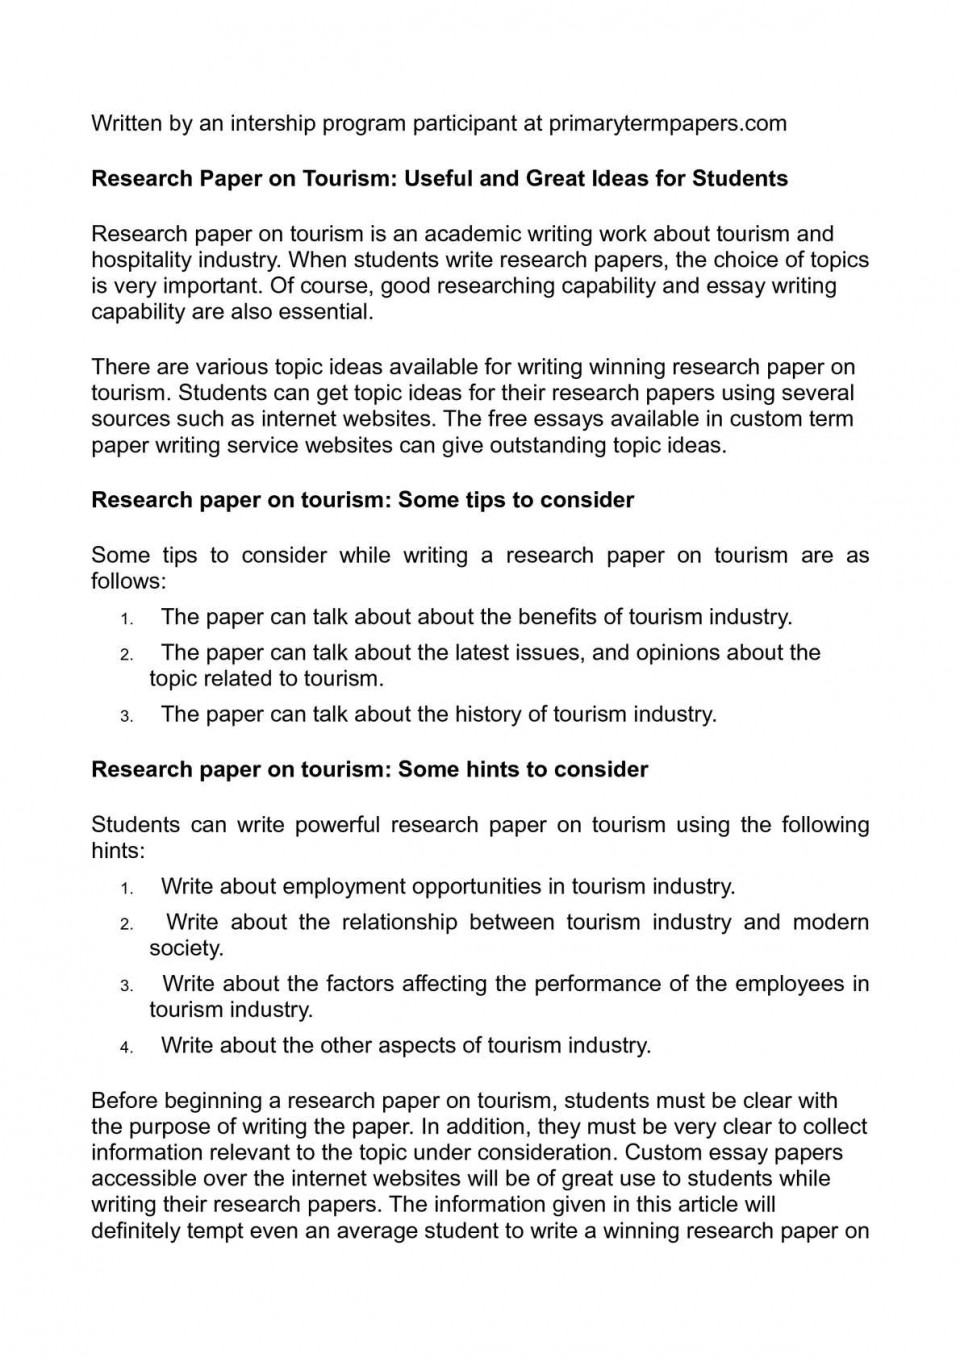 009 Research Paper Ideas For Fascinating Papers In Computer Science Middle School 960